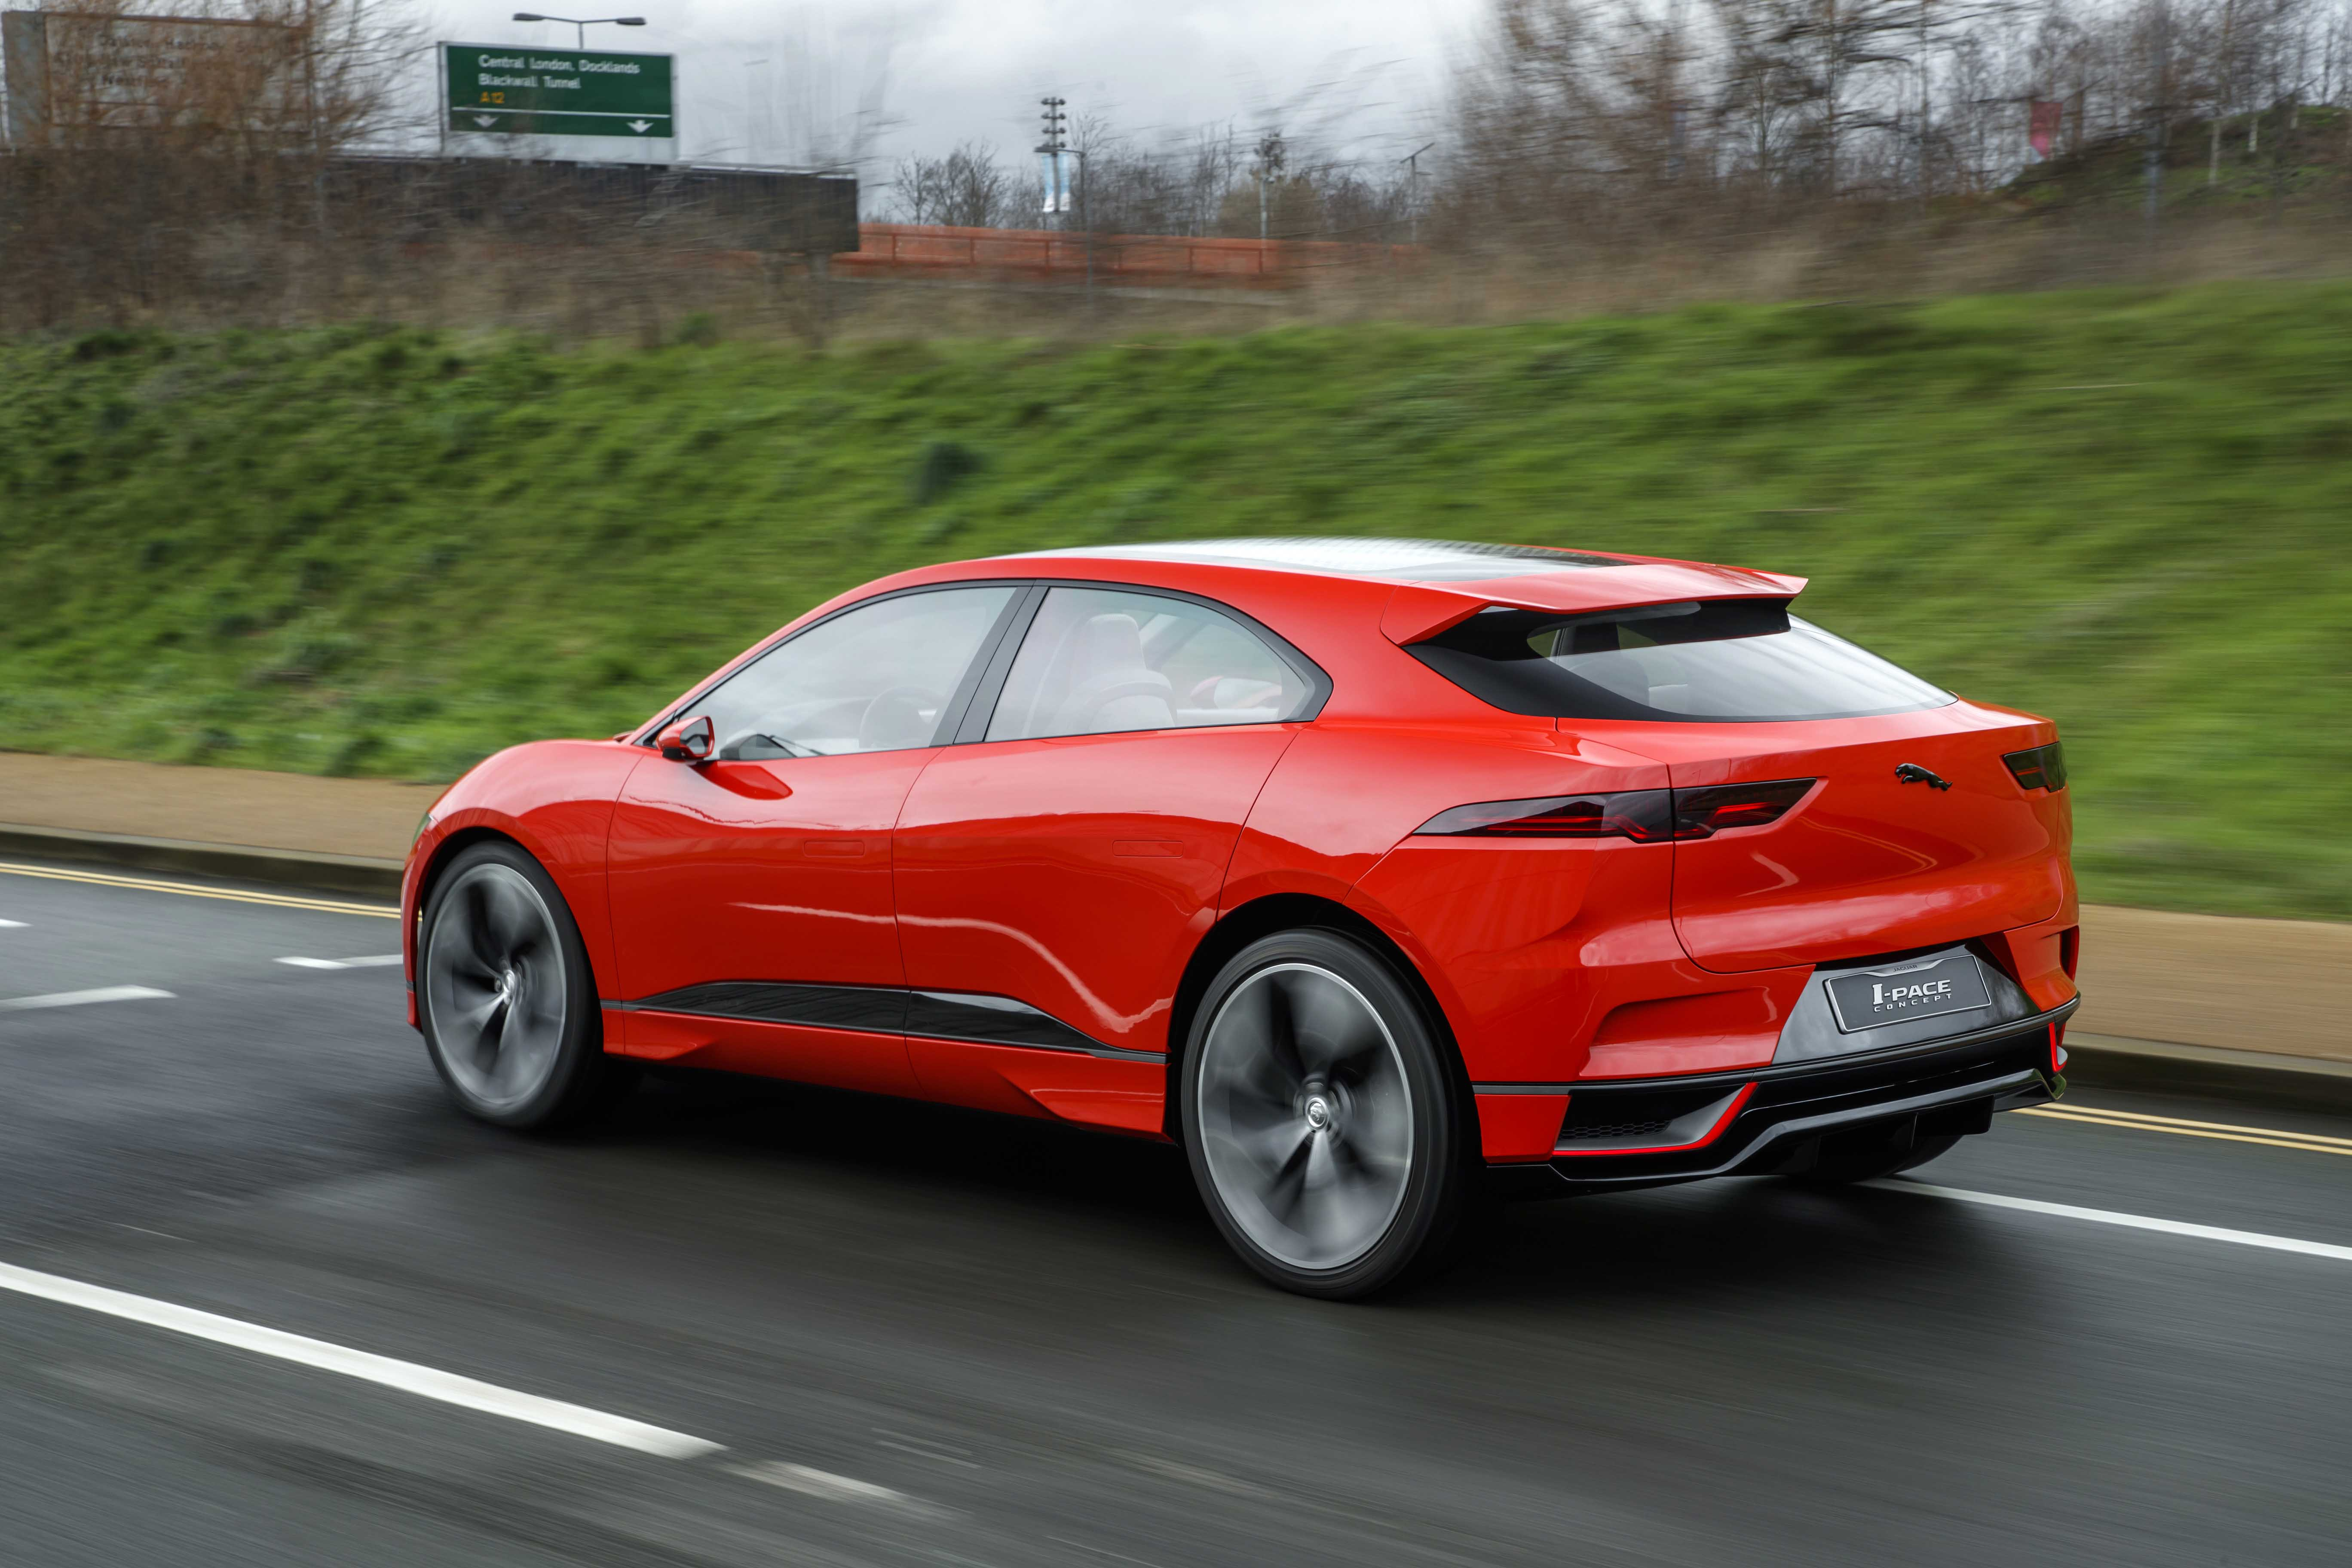 Jaguar I-Pace suv specifications